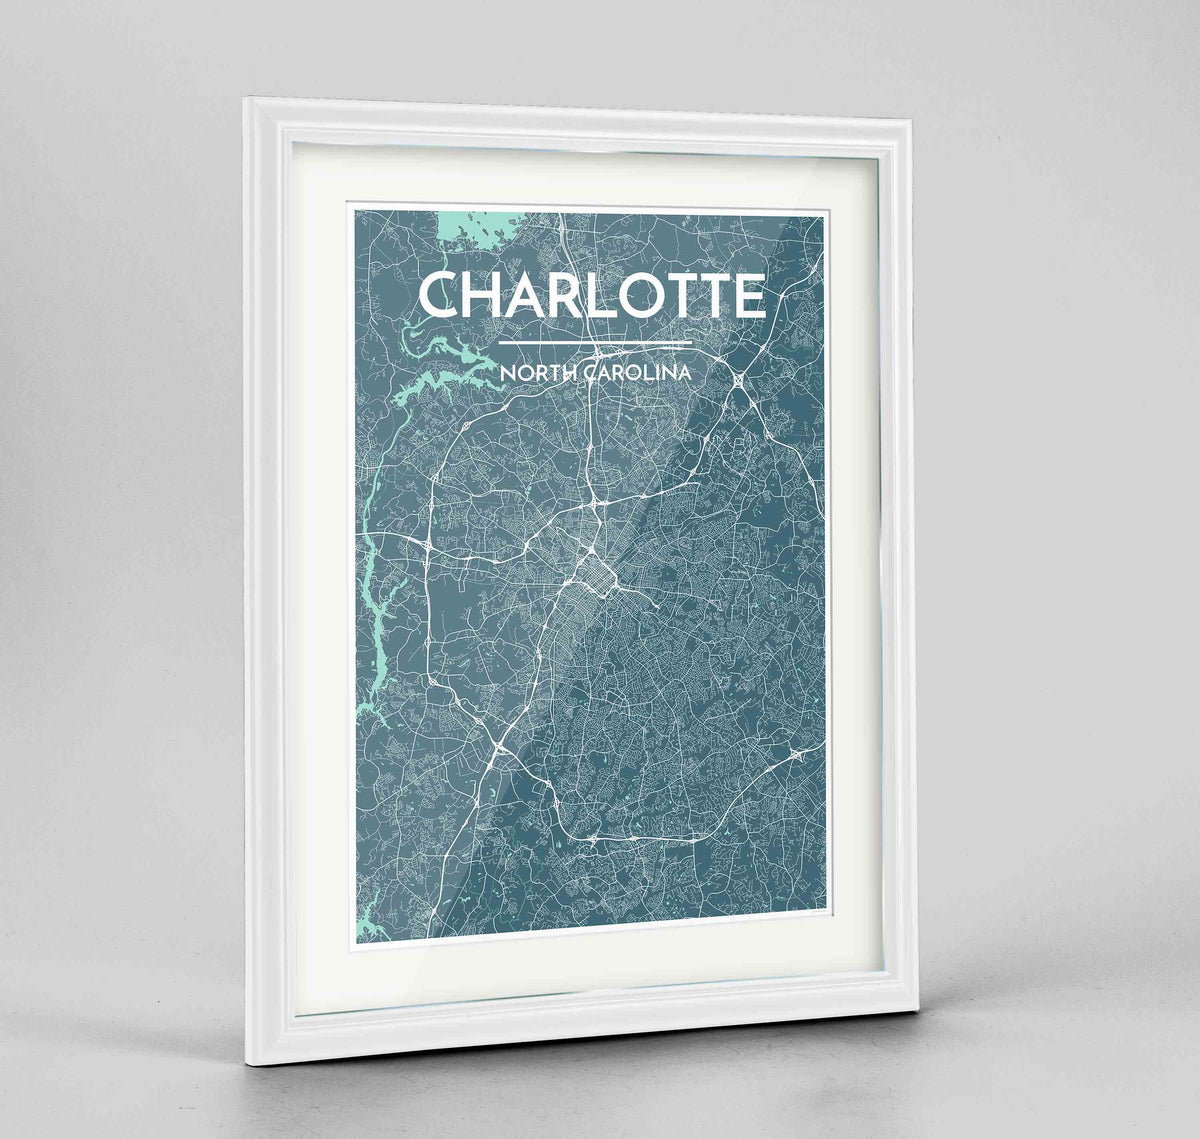 "Framed Charlotte Map Art Print 24x36"" Traditional White frame Point Two Design Group"